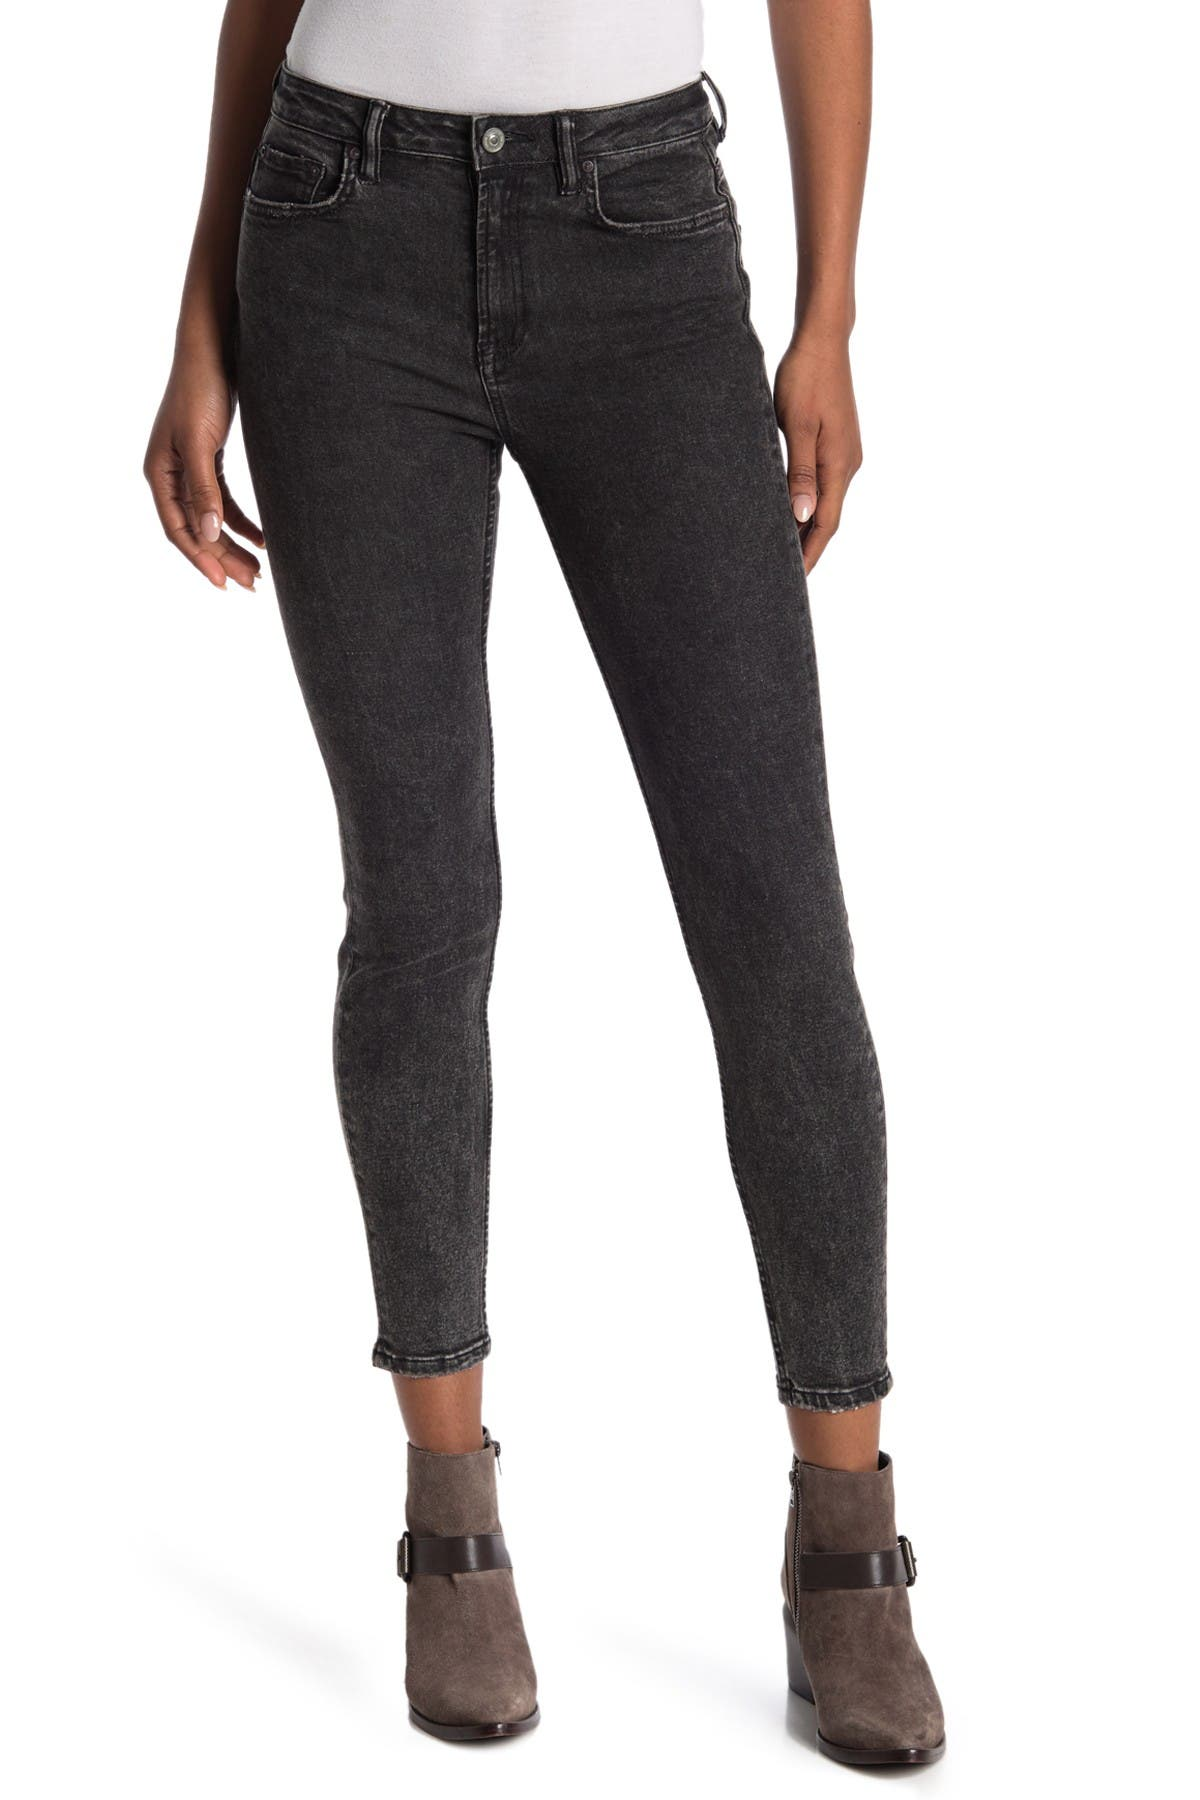 Image of ALLSAINTS Nyla High Waist Ankle Crop Skinny Jeans